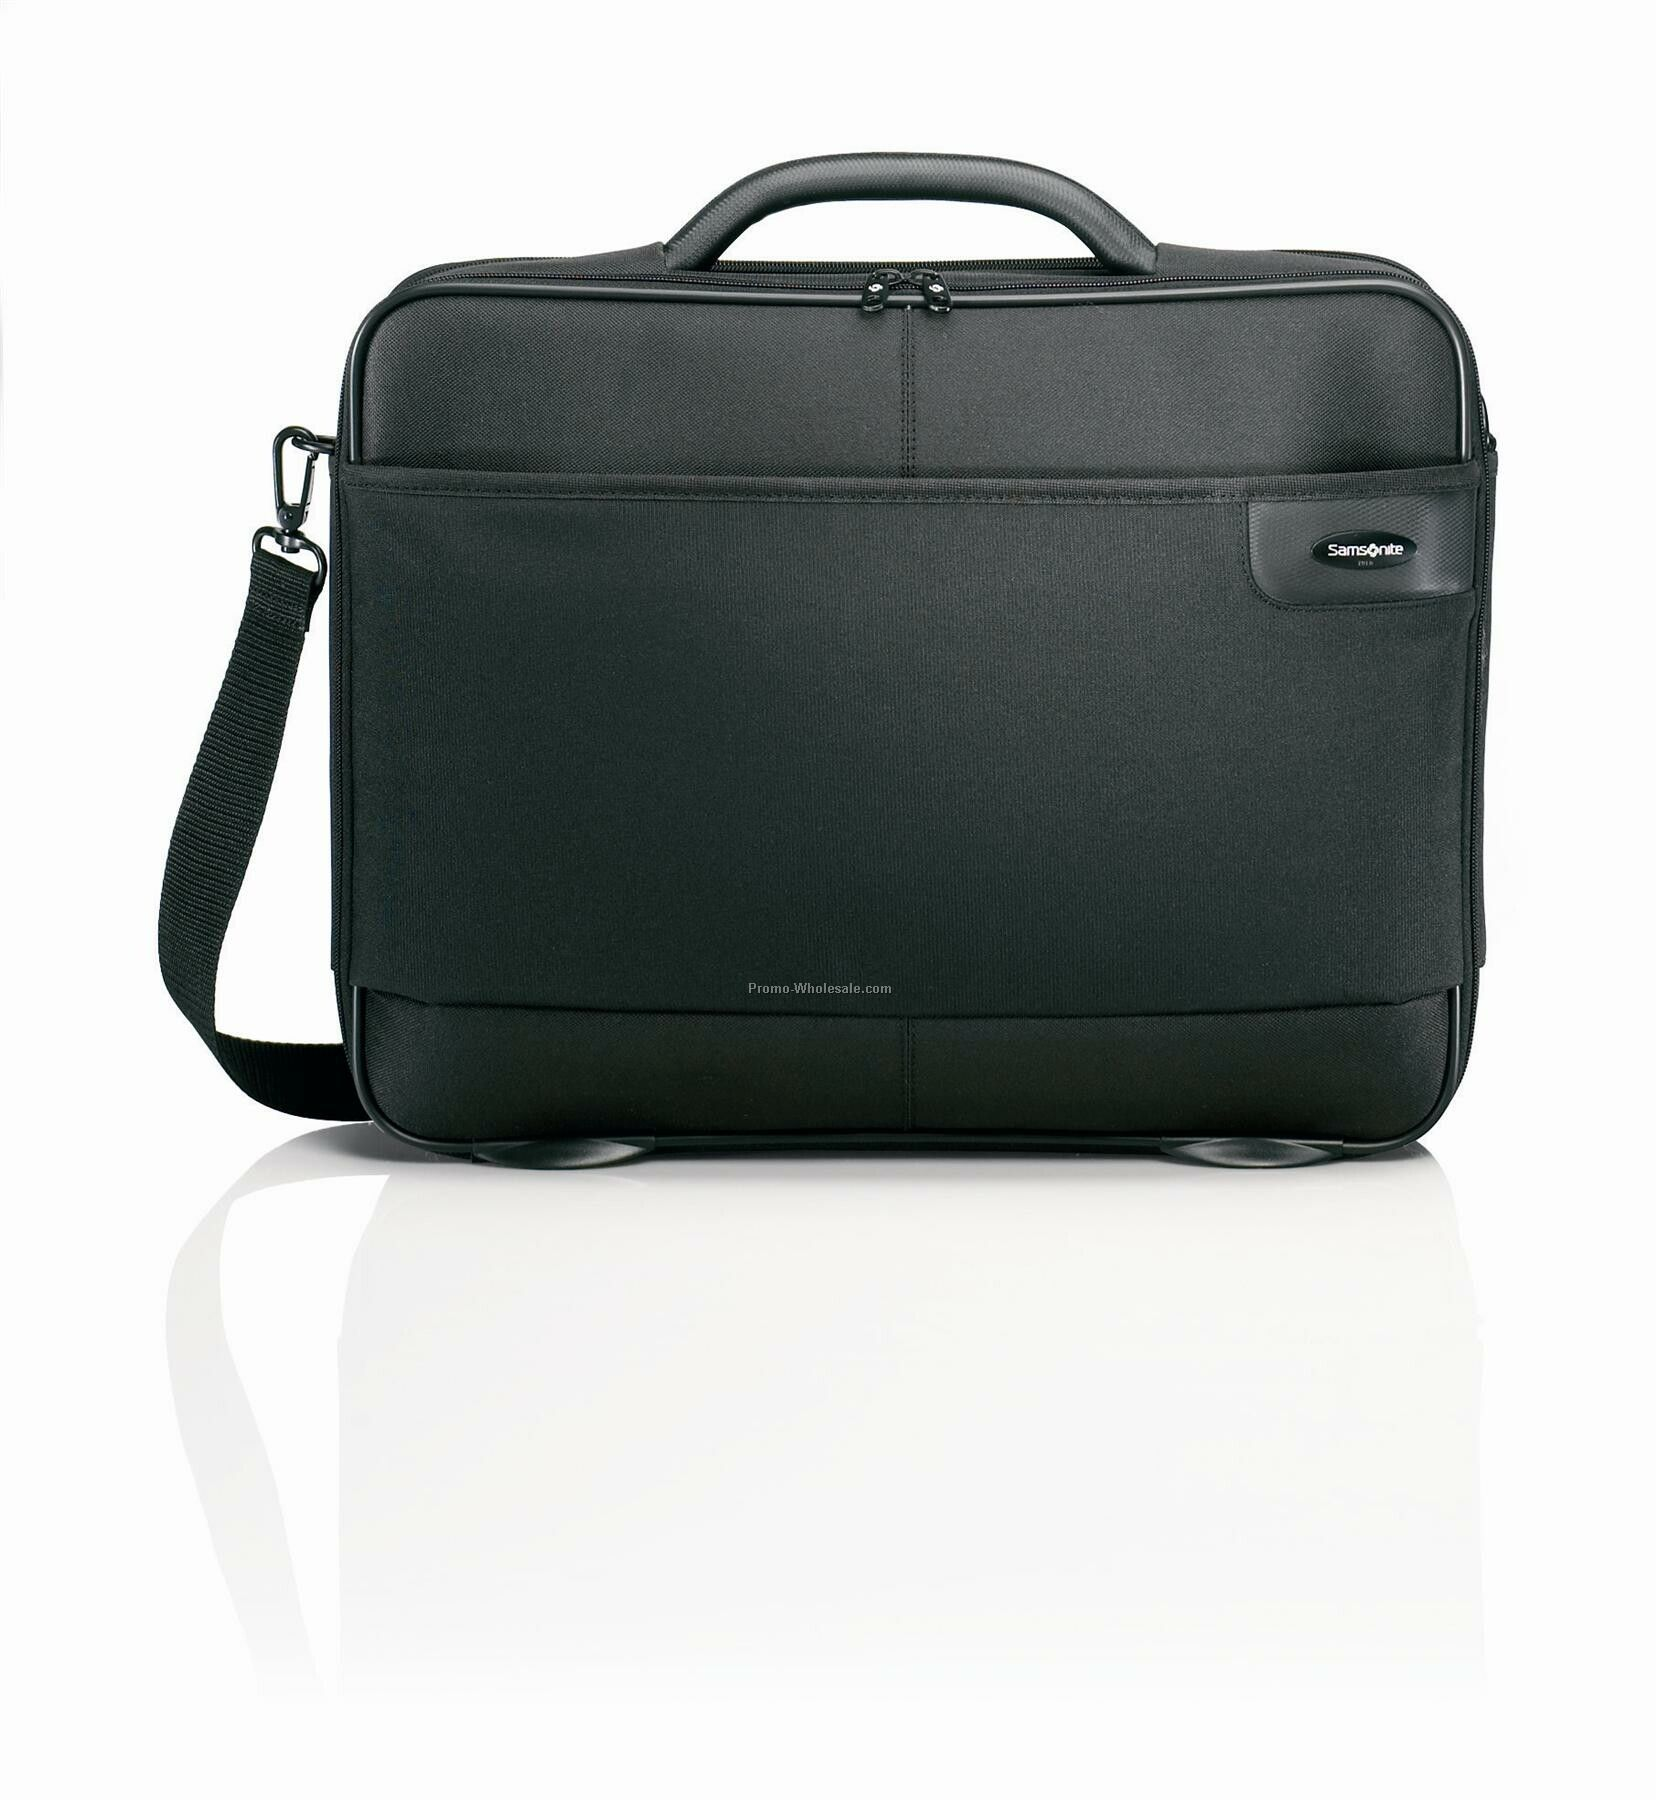 Samsonite Unity Ict Office Case Briefcase